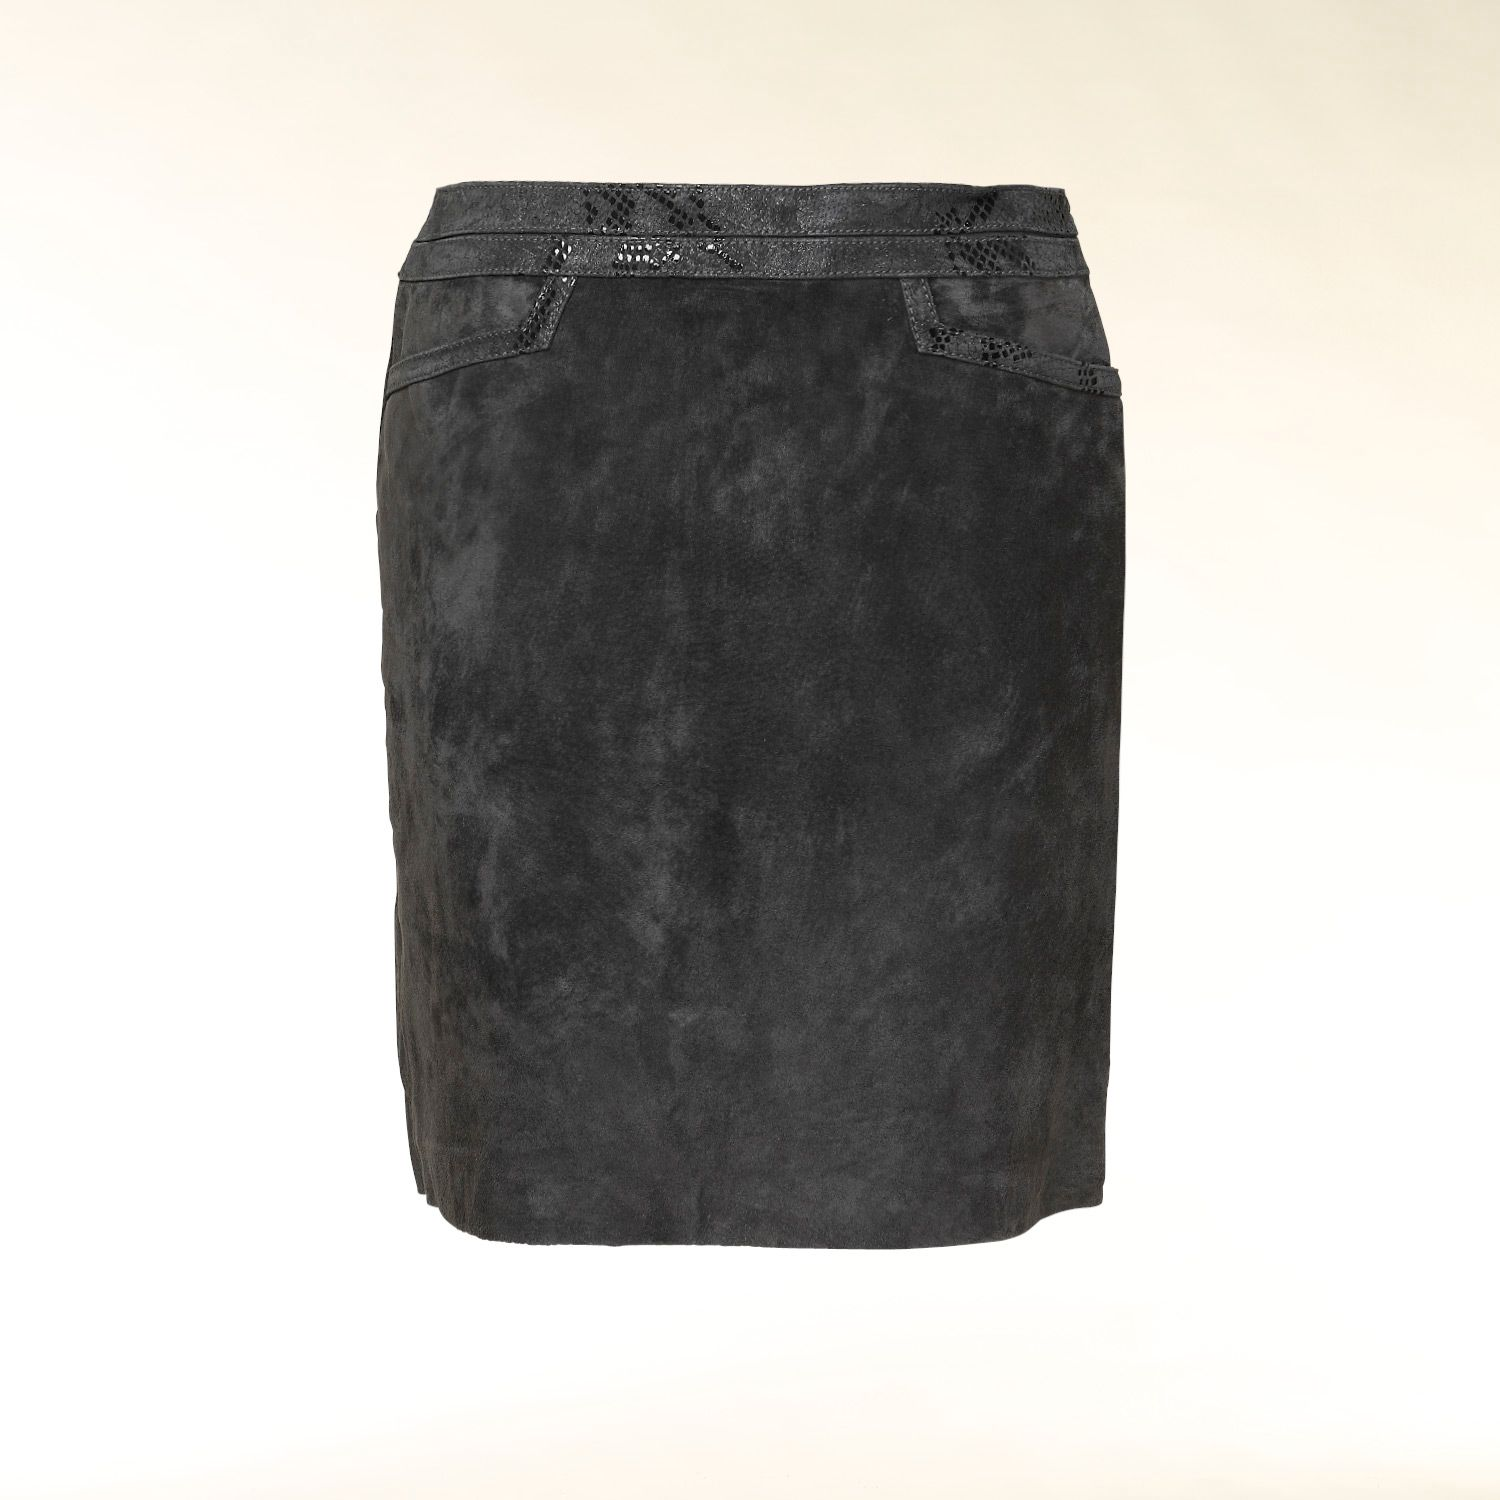 Suede snakeskin print trim pencil skirt